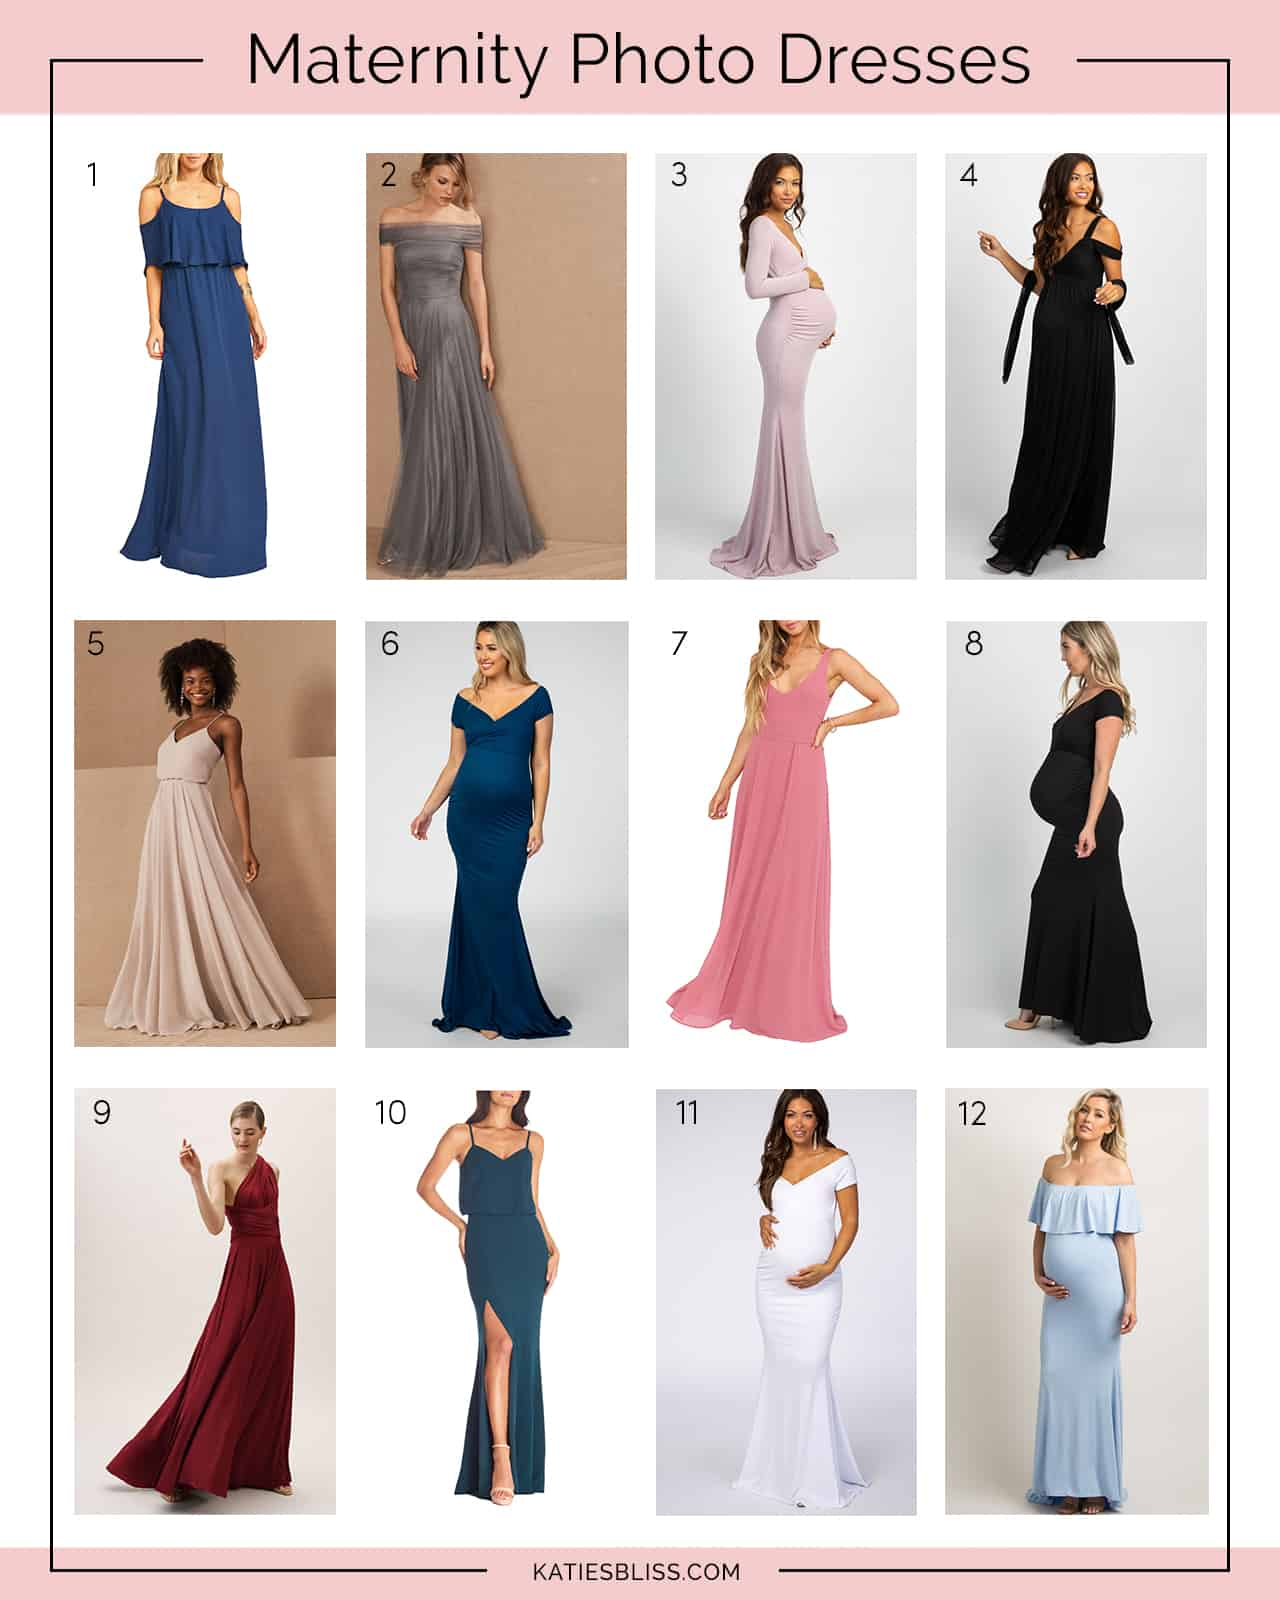 Where To Buy Maternity Photo Dresses